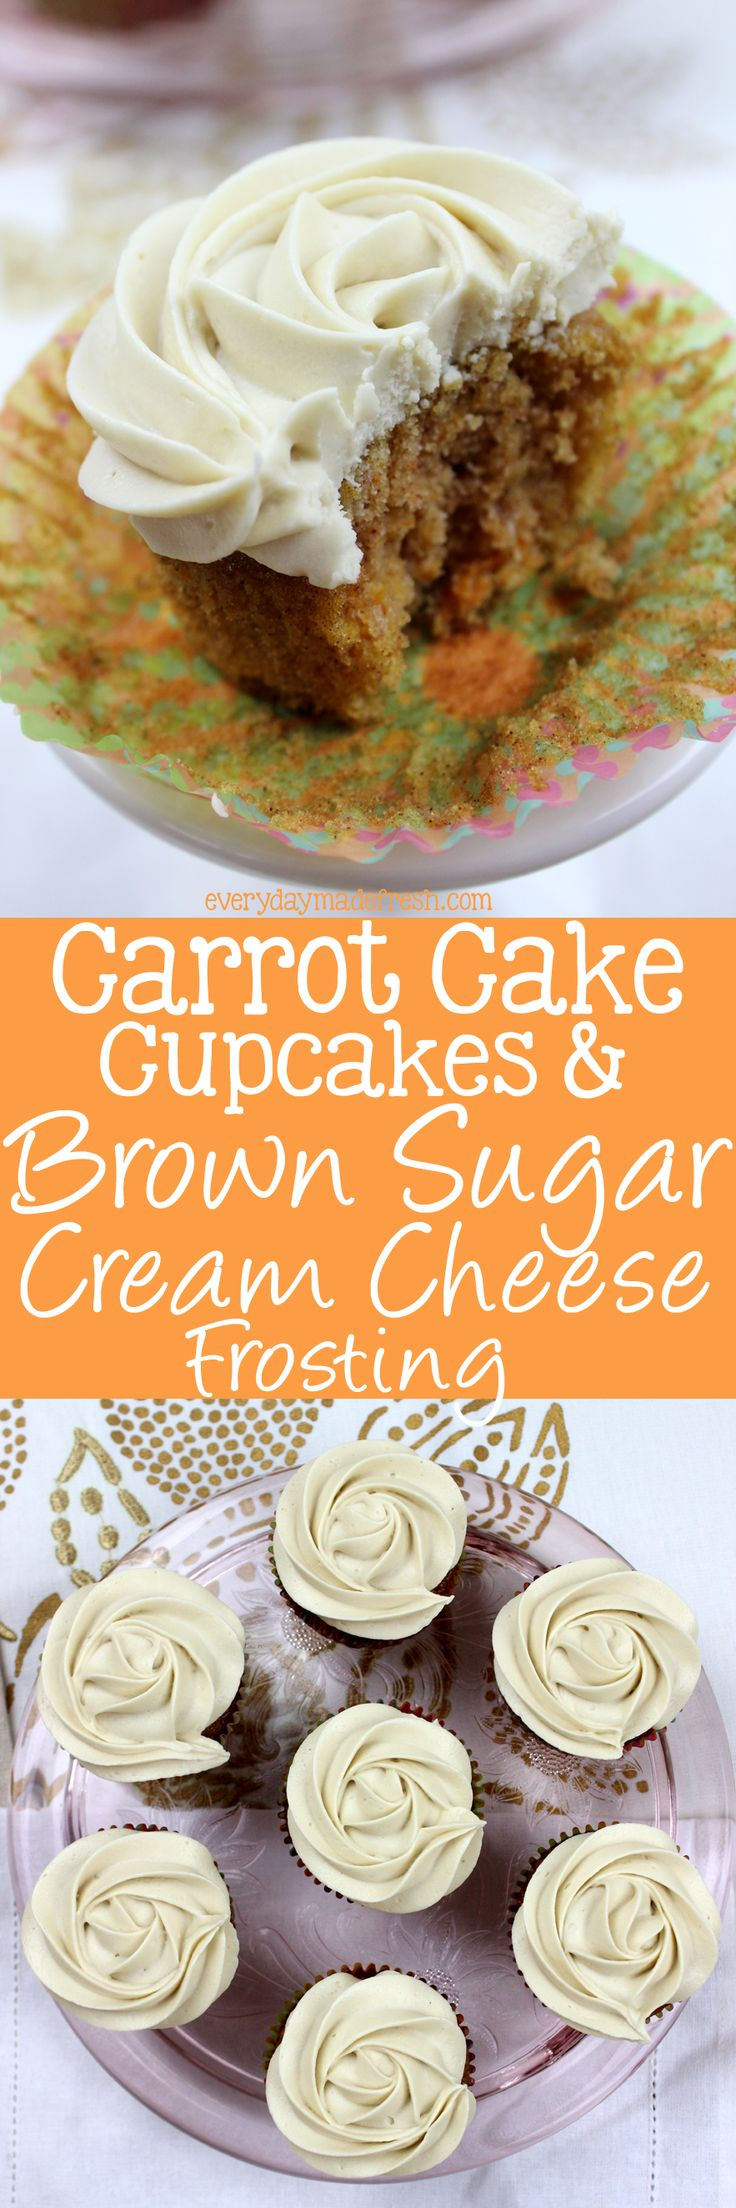 These Carrot Cake Cupcakes & Brown Sugar Cream Cheese Frosting are soft, moist, delicious, and will be a hit at your next celebration! | EverydayMadeFresh.com http://www.everydaymadefresh.com/carrot-cake-cupcakes-brown-sugar-cream-cheese-frosting/